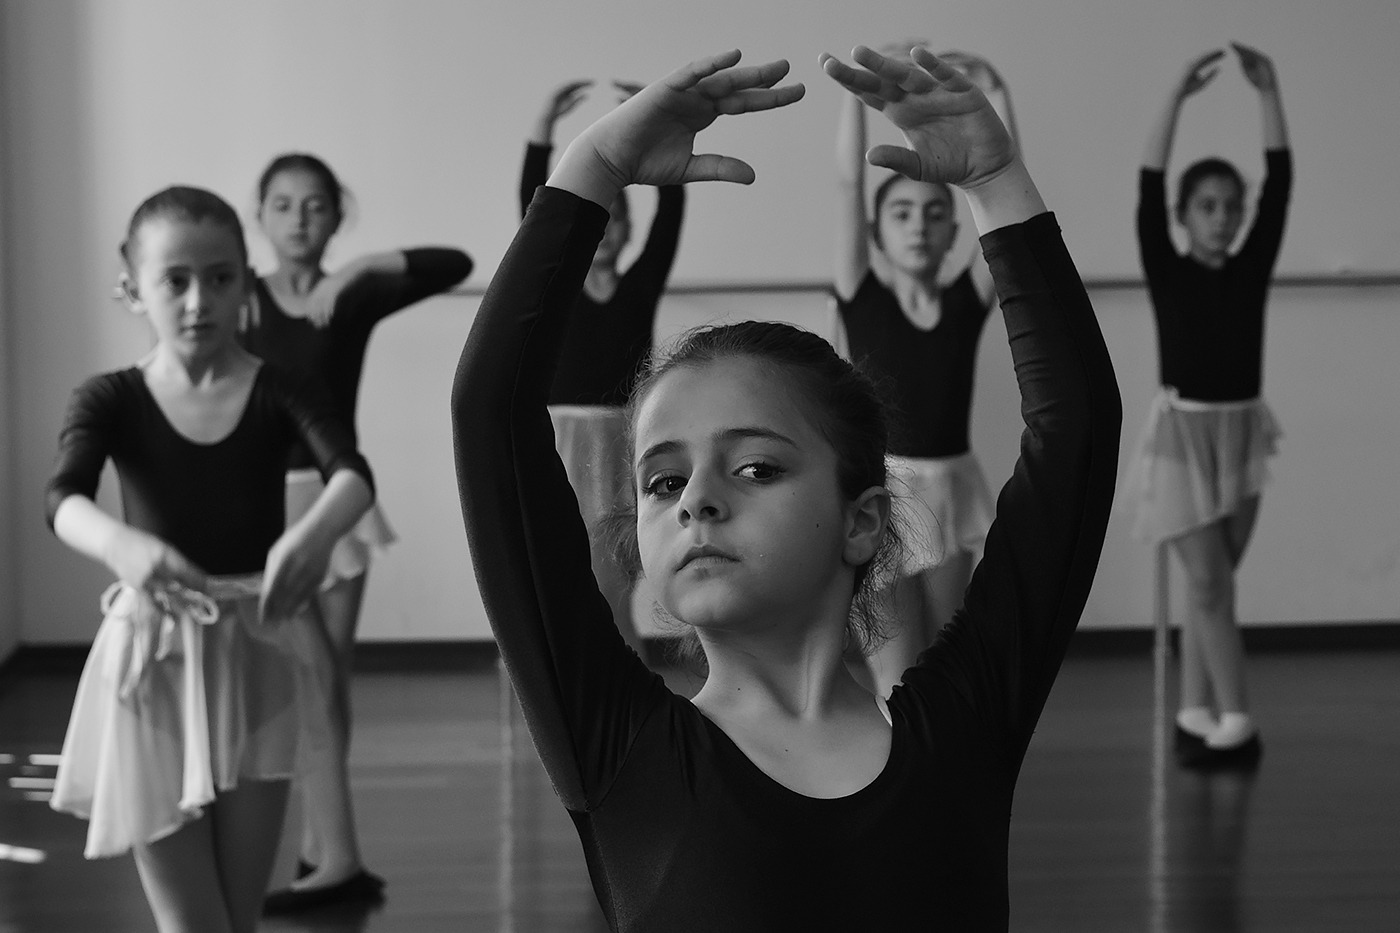 DSC 2643 - Photostory from Gyumri's Ballet School